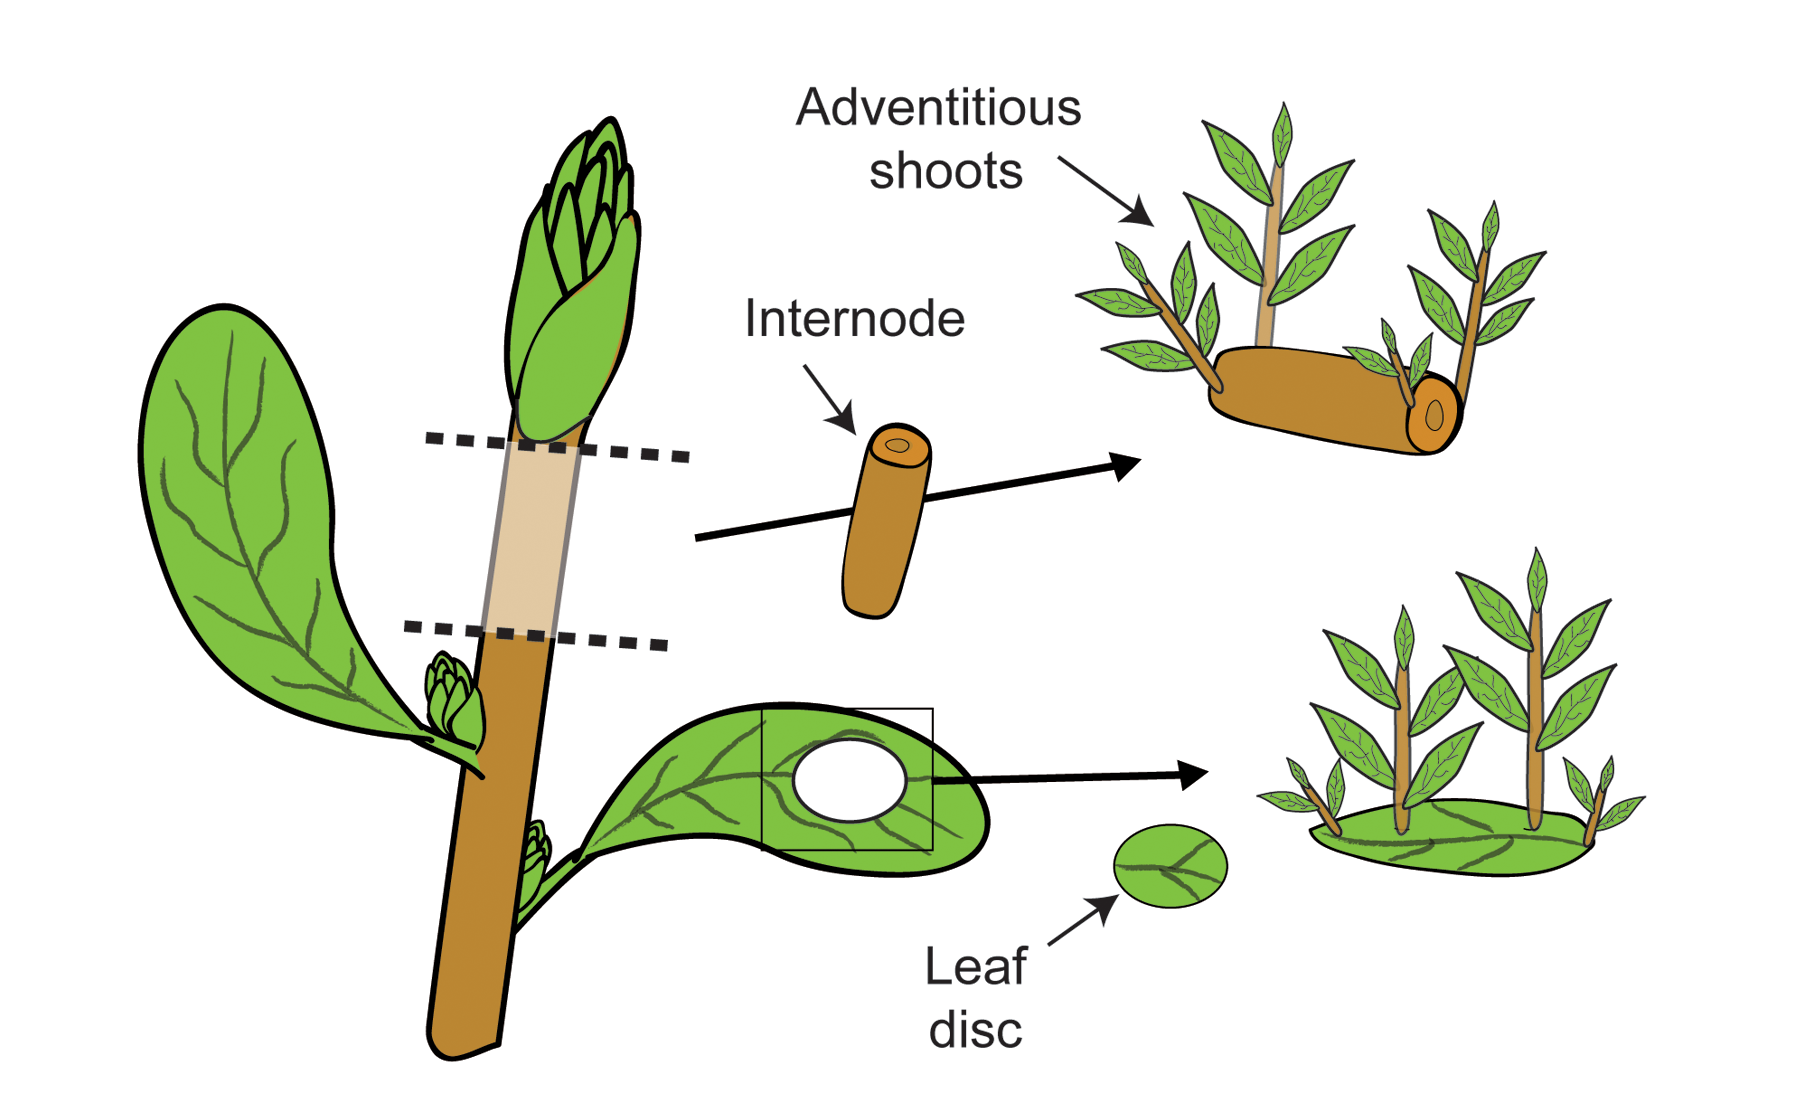 illustration showing portions of portions of plant shoots can arise from